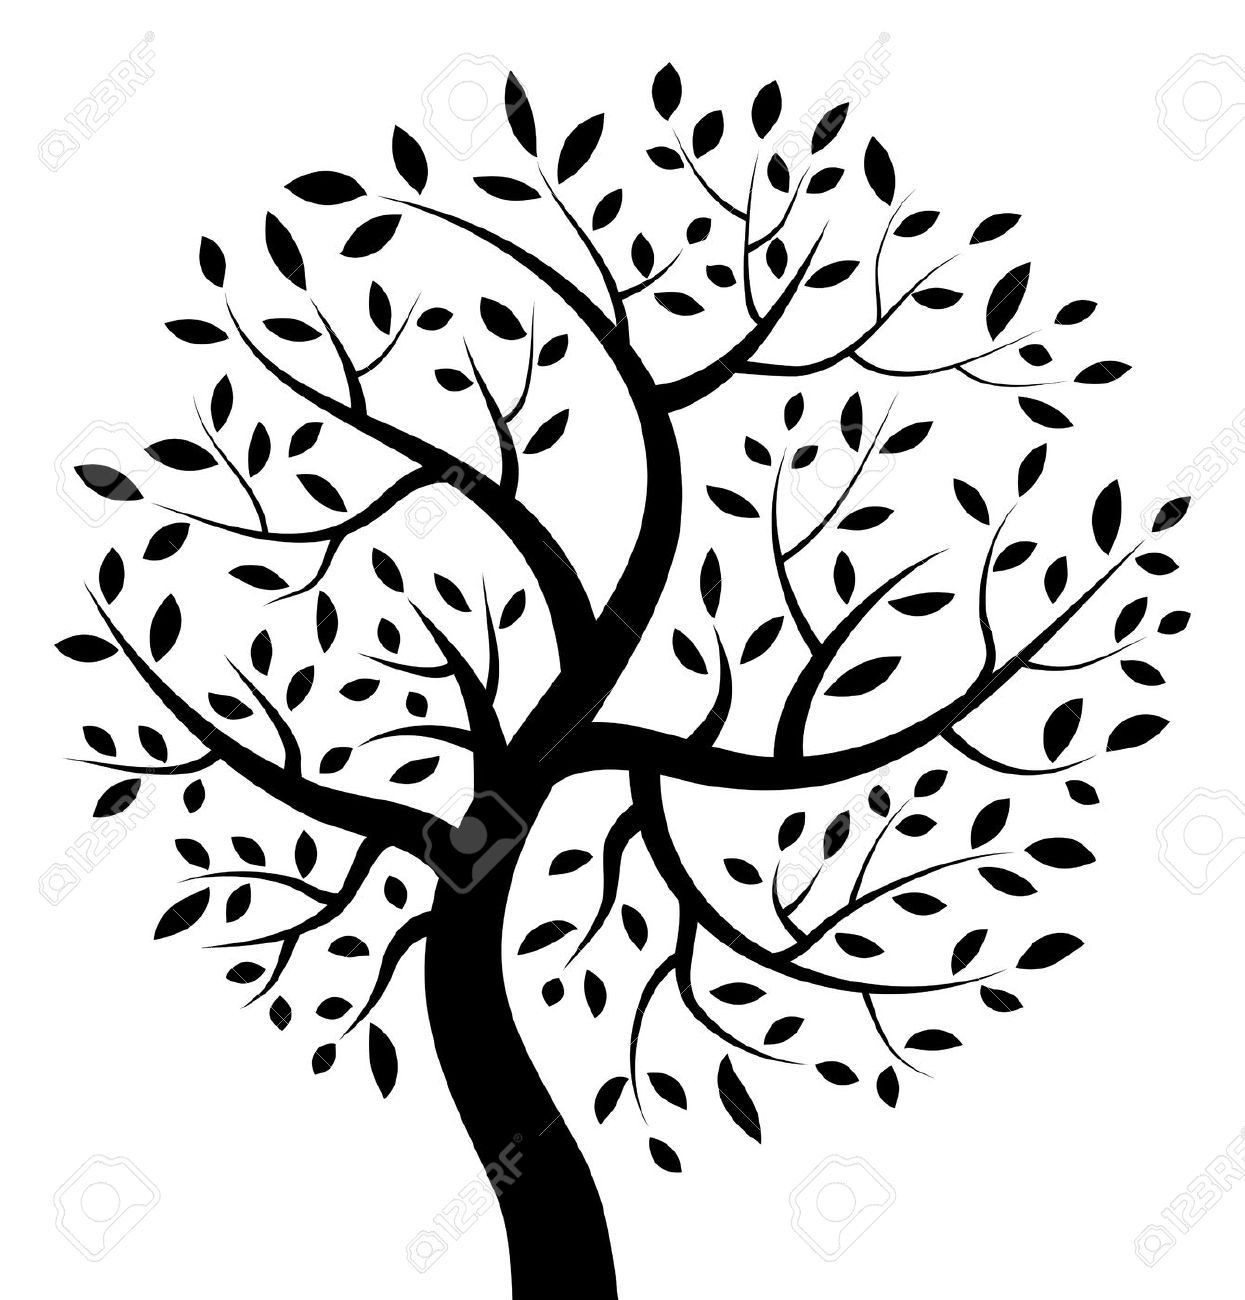 willow tree silhouette clip art at getdrawings com free for rh getdrawings com weeping willow tree clip art free weeping willow tree clip art free